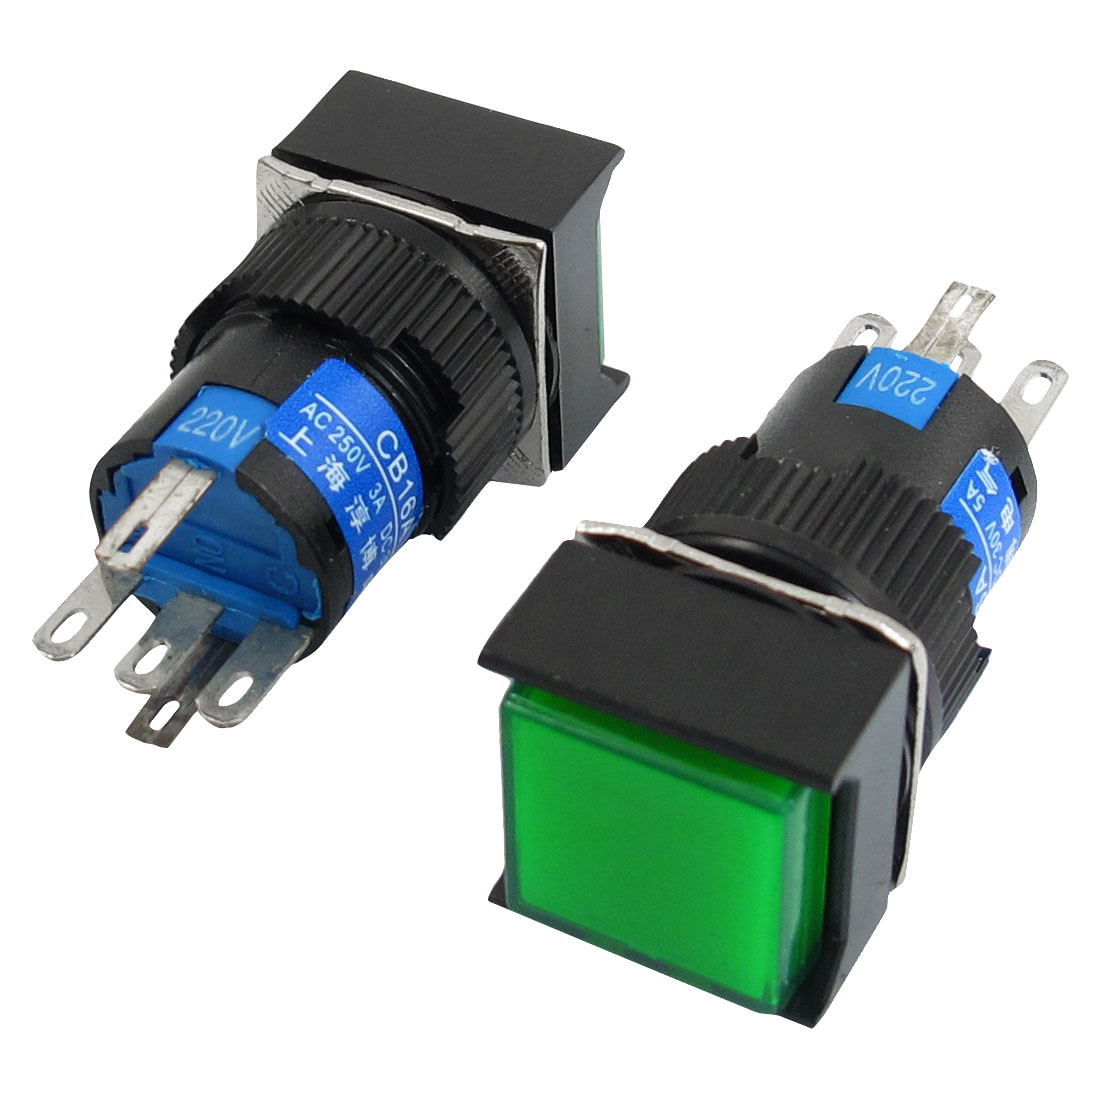 2 Pcs Green Sign Square Type Latching Push Button Switch 5P NO NC 220VAC Lamp